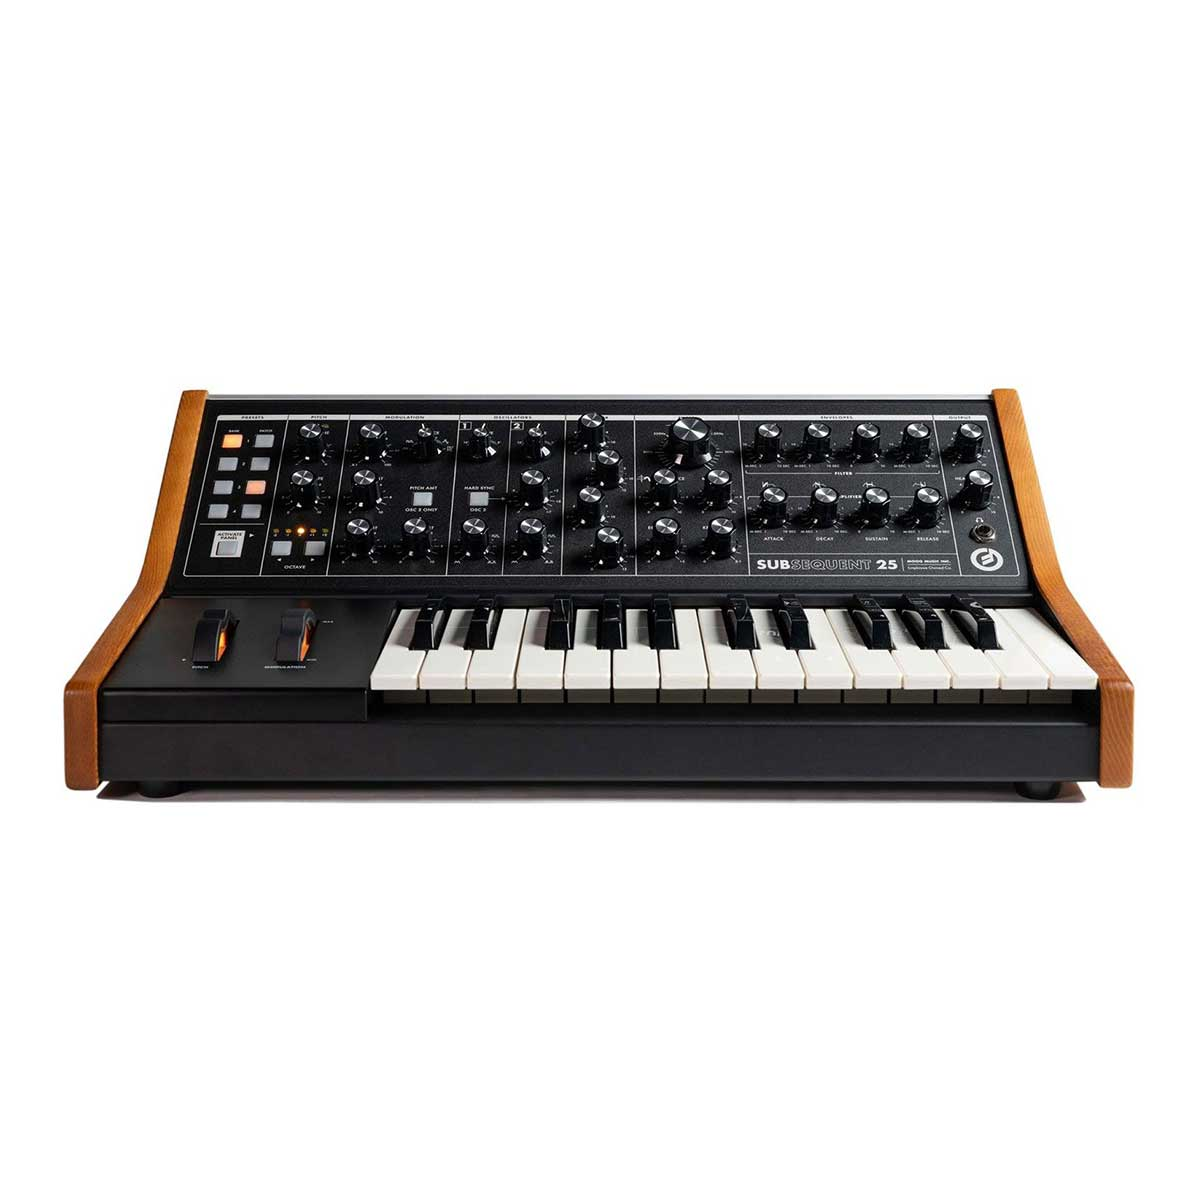 Moog Subsequent 25 paraphonic analog synthesizer Front